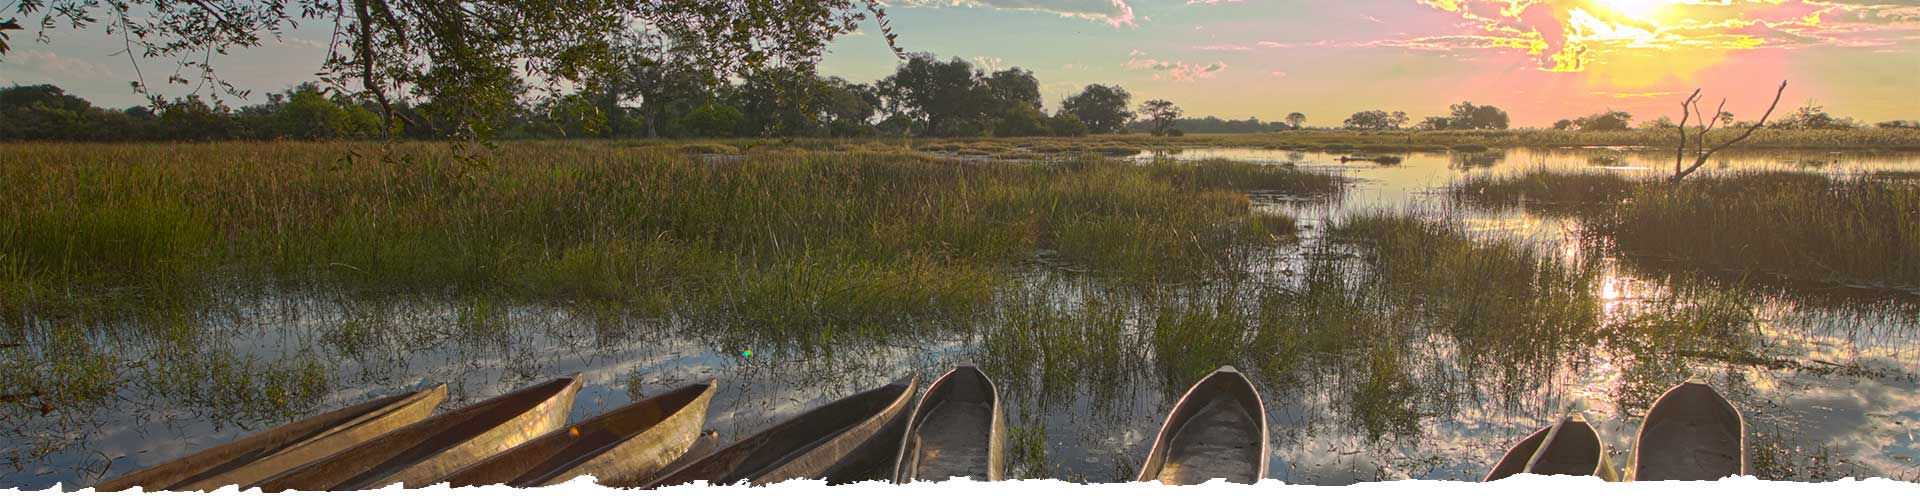 Explore-Botswana-about-us-slider